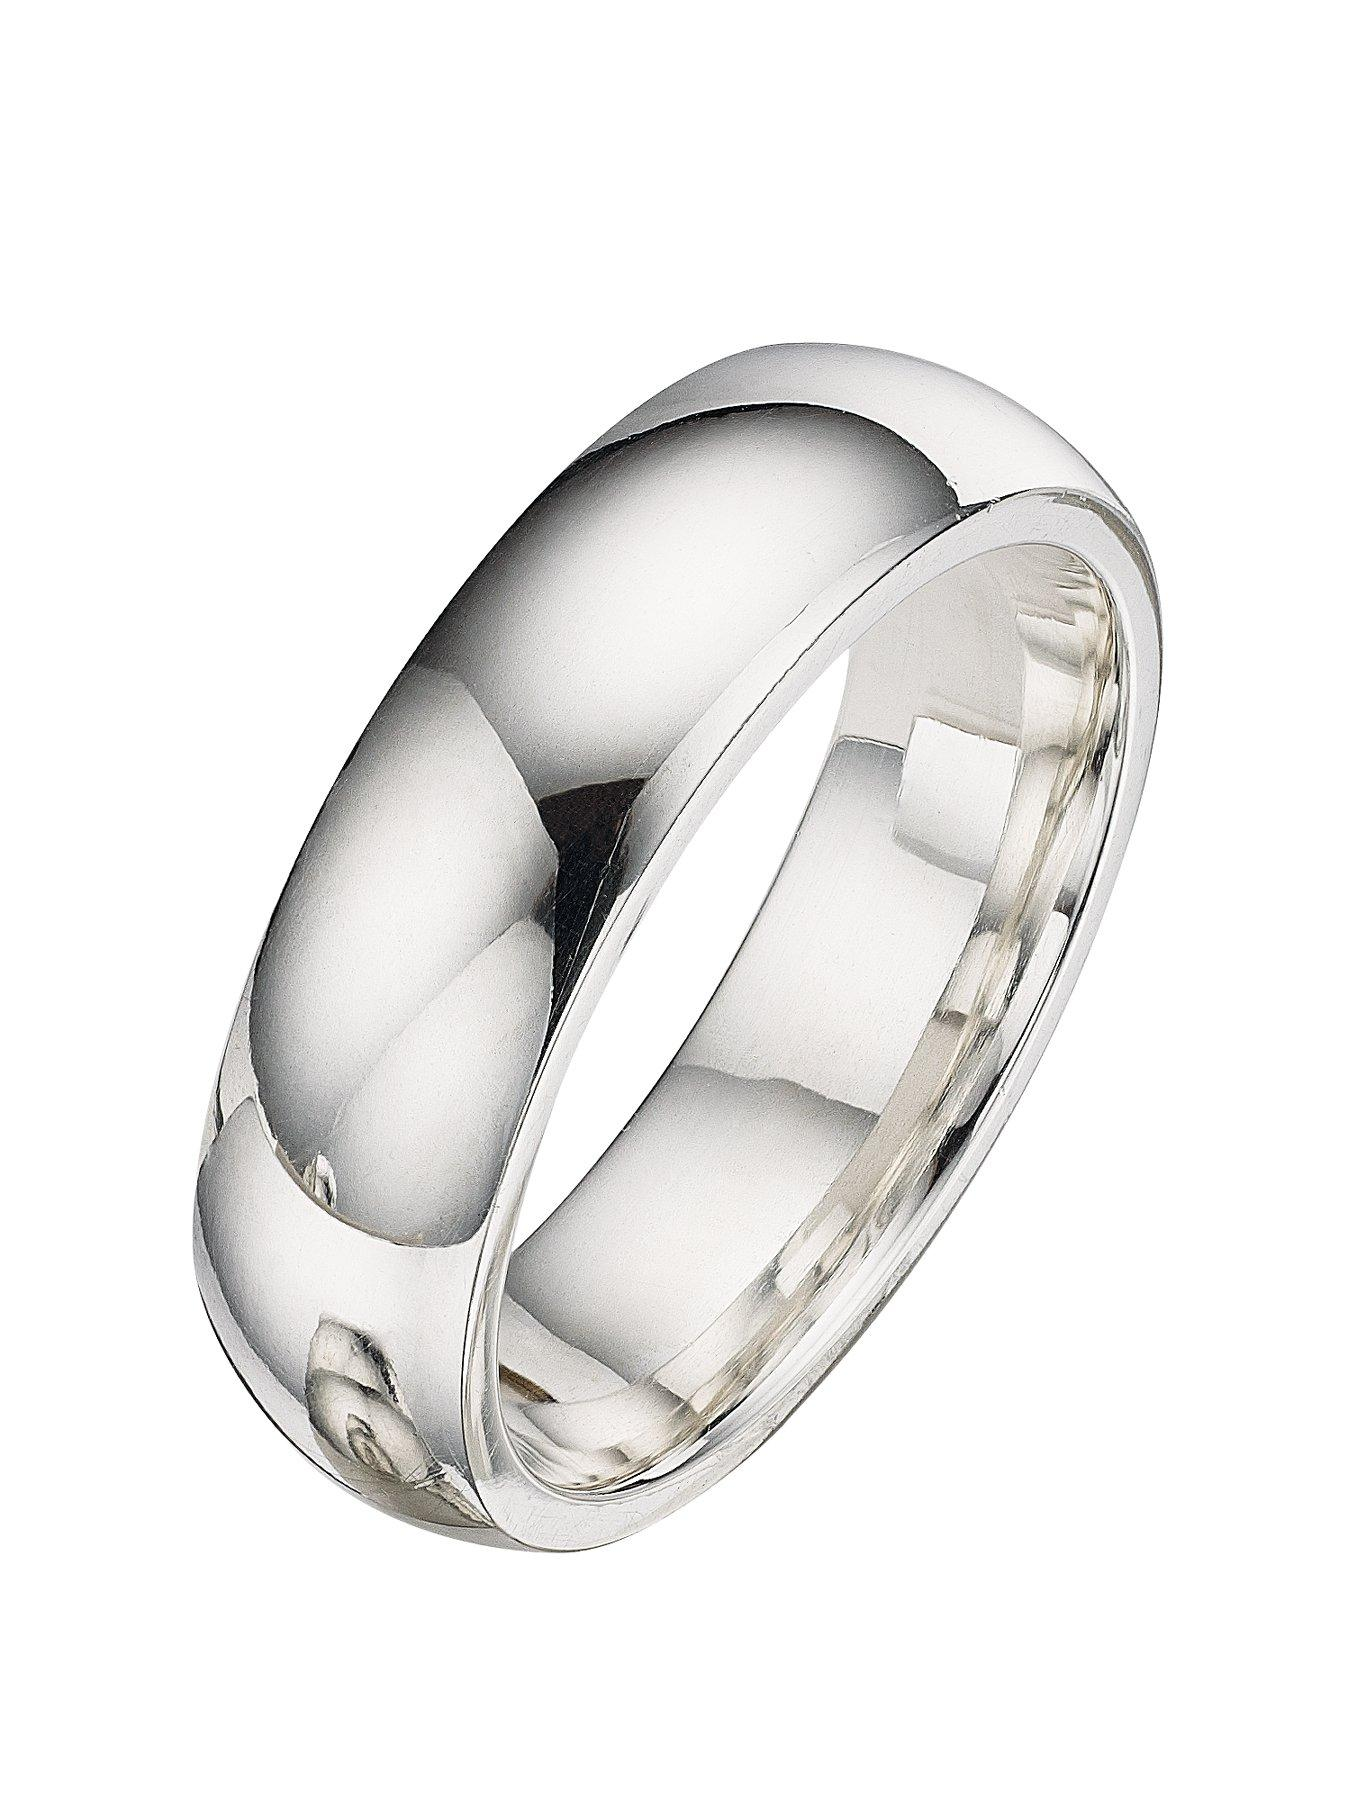 Brand New Argentium 958 Silver Diamond Cut Patterned Wedding Ring Band